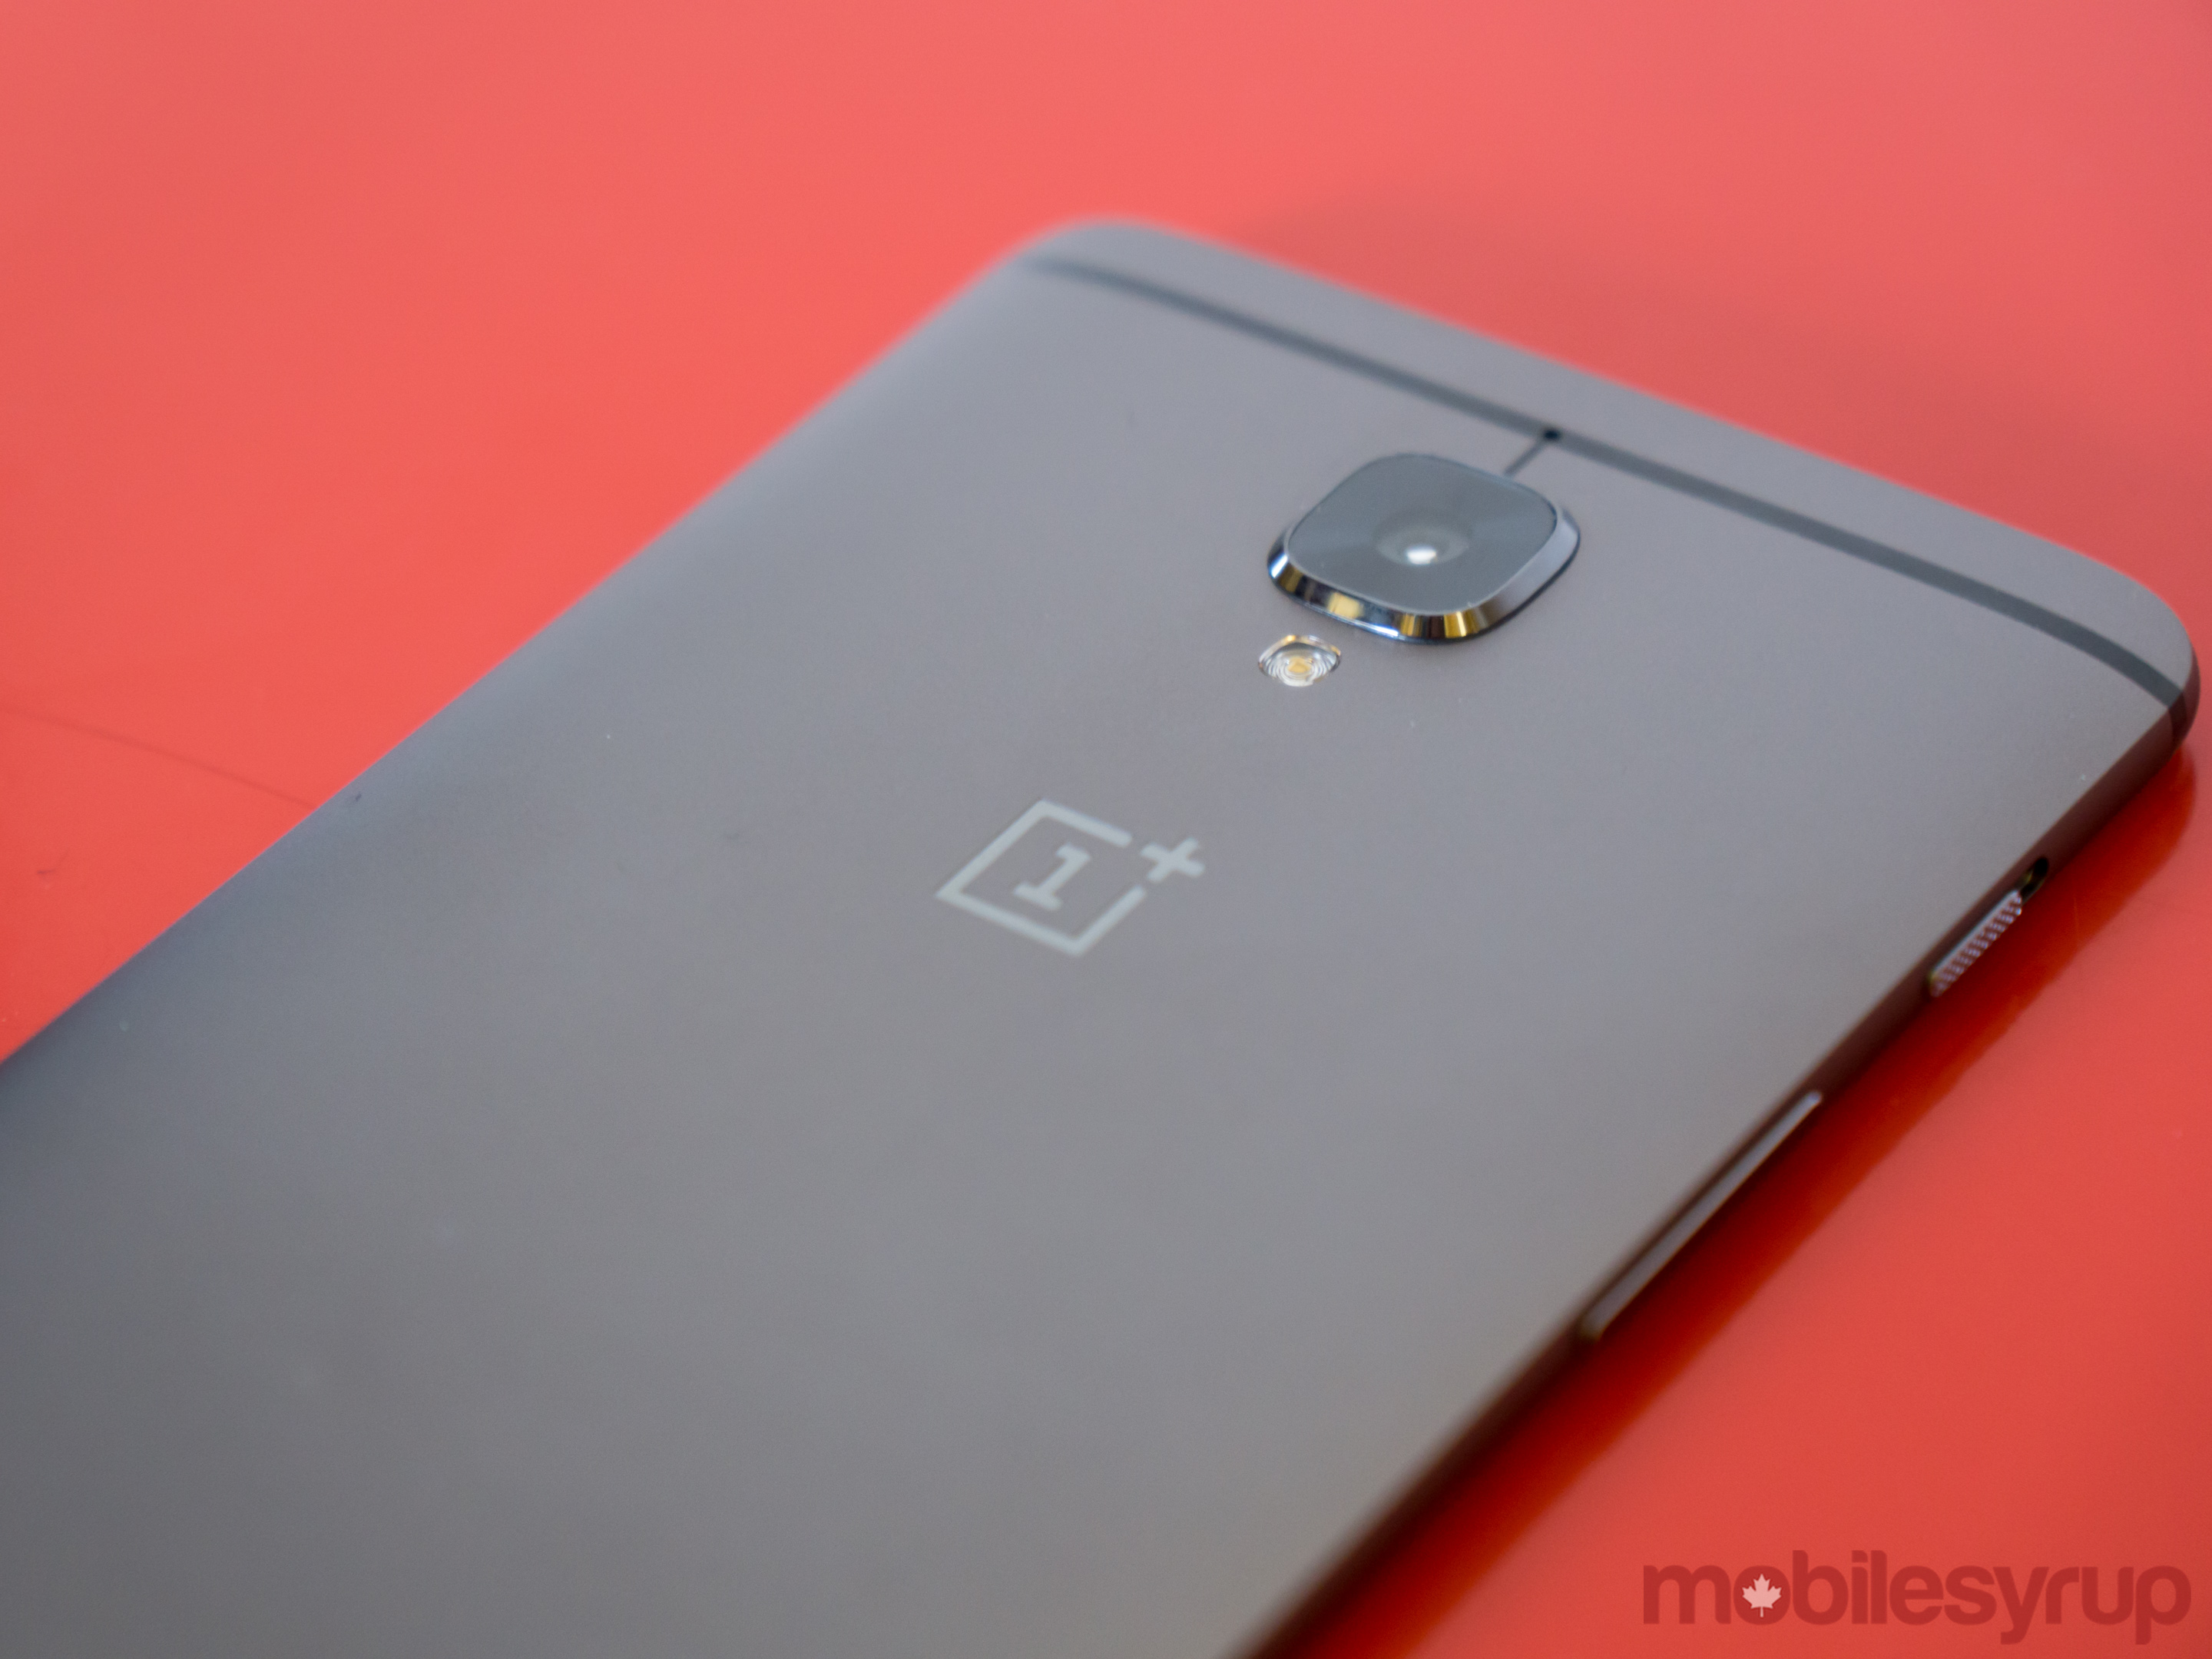 A first look at the new OnePlus 3T [Gallery]